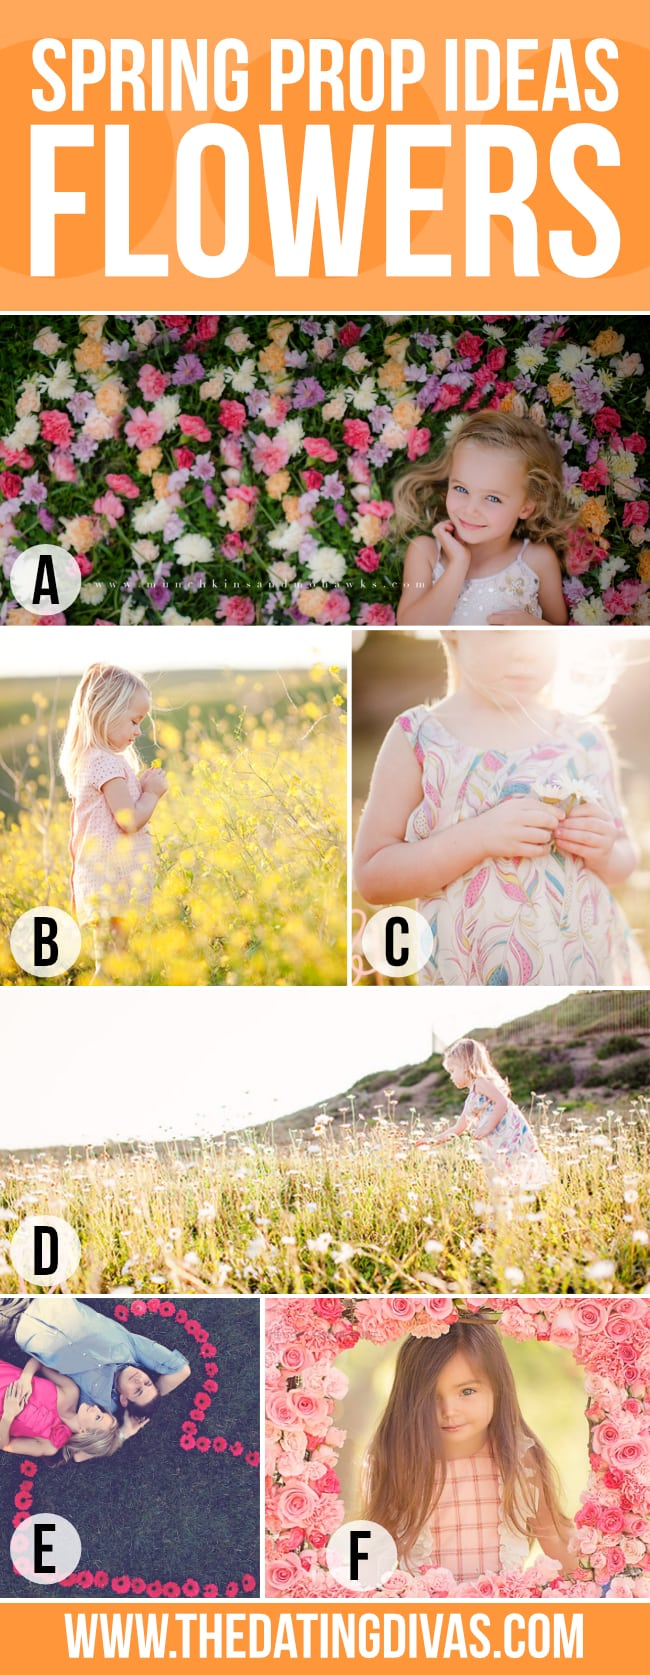 Spring Photography with Flowers